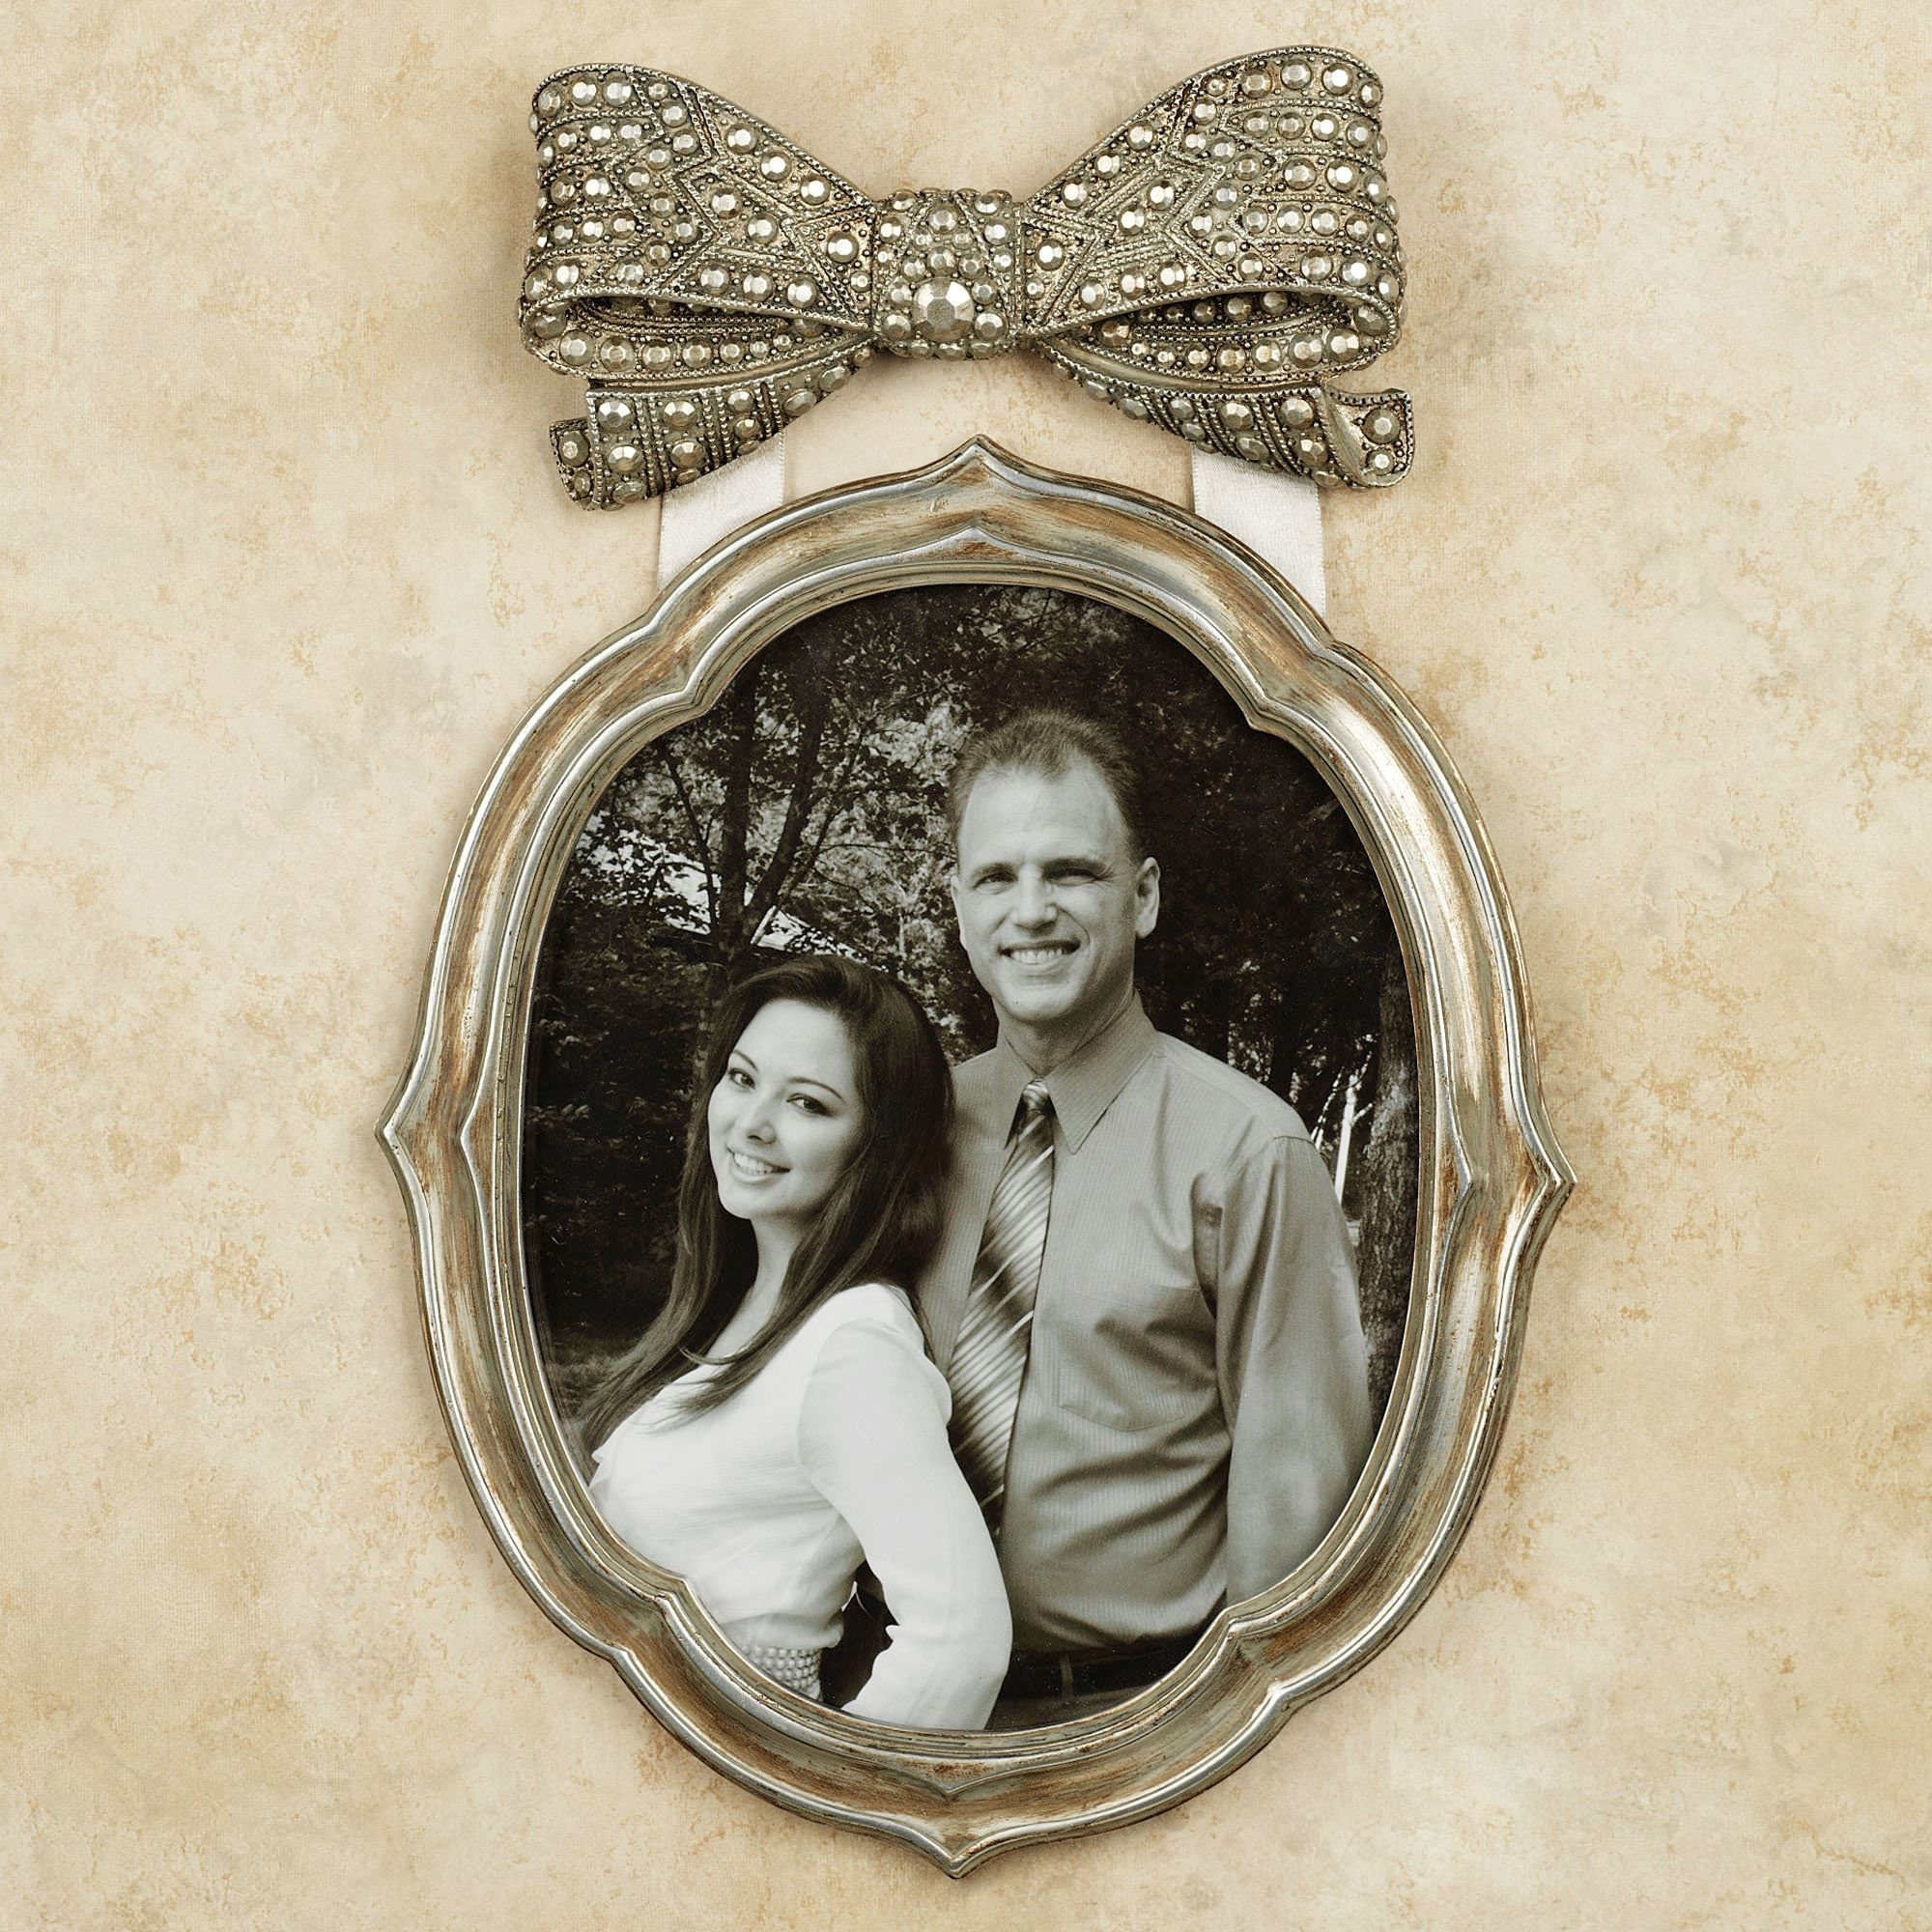 Antique Finish Silver Signing Frame: Bow Antique Silver Finish Wall Photo Frame